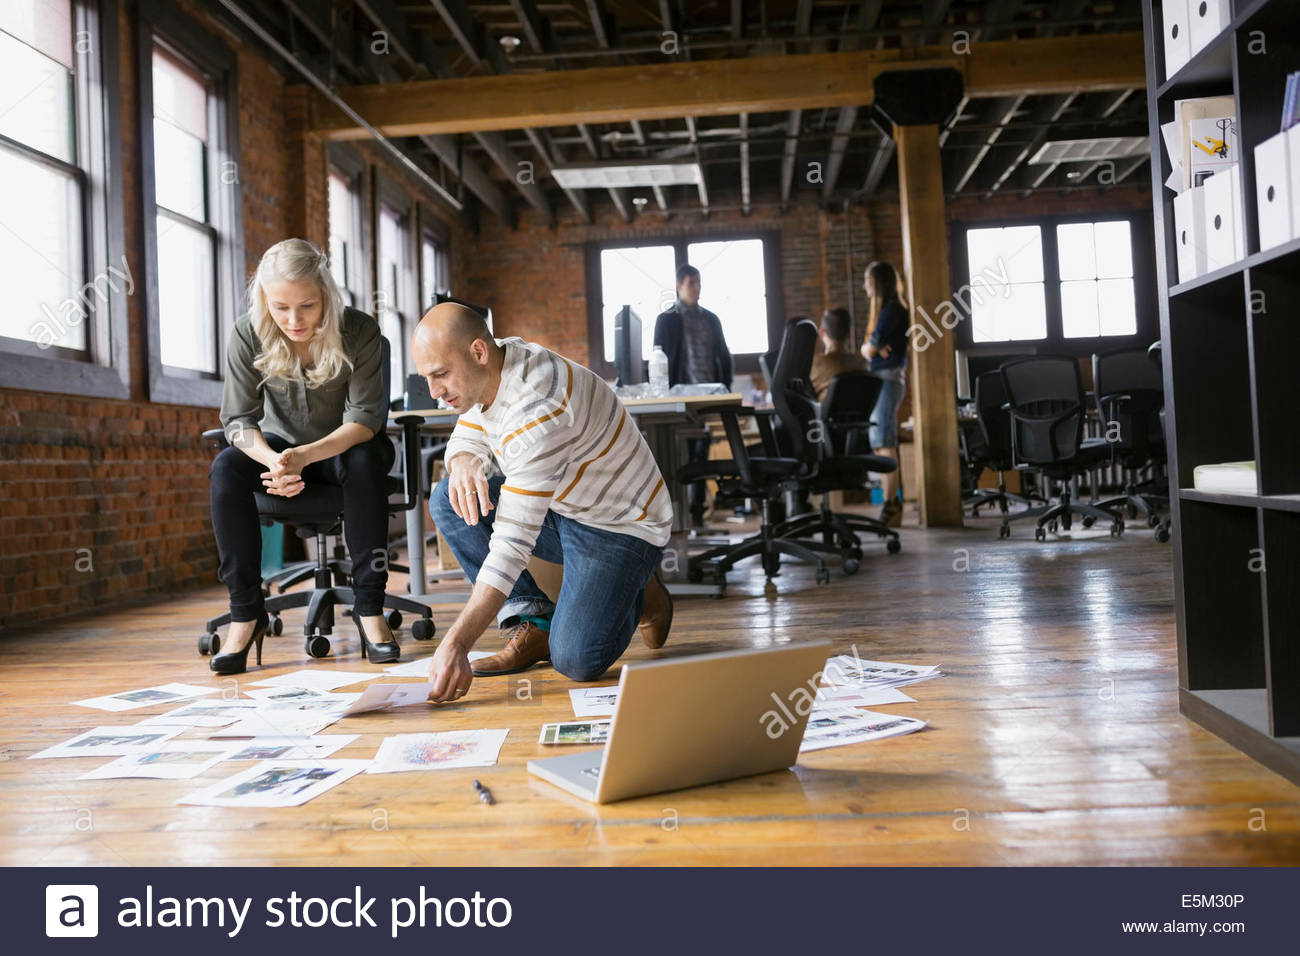 Business people reviewing proofs on floor in office - Stock Image